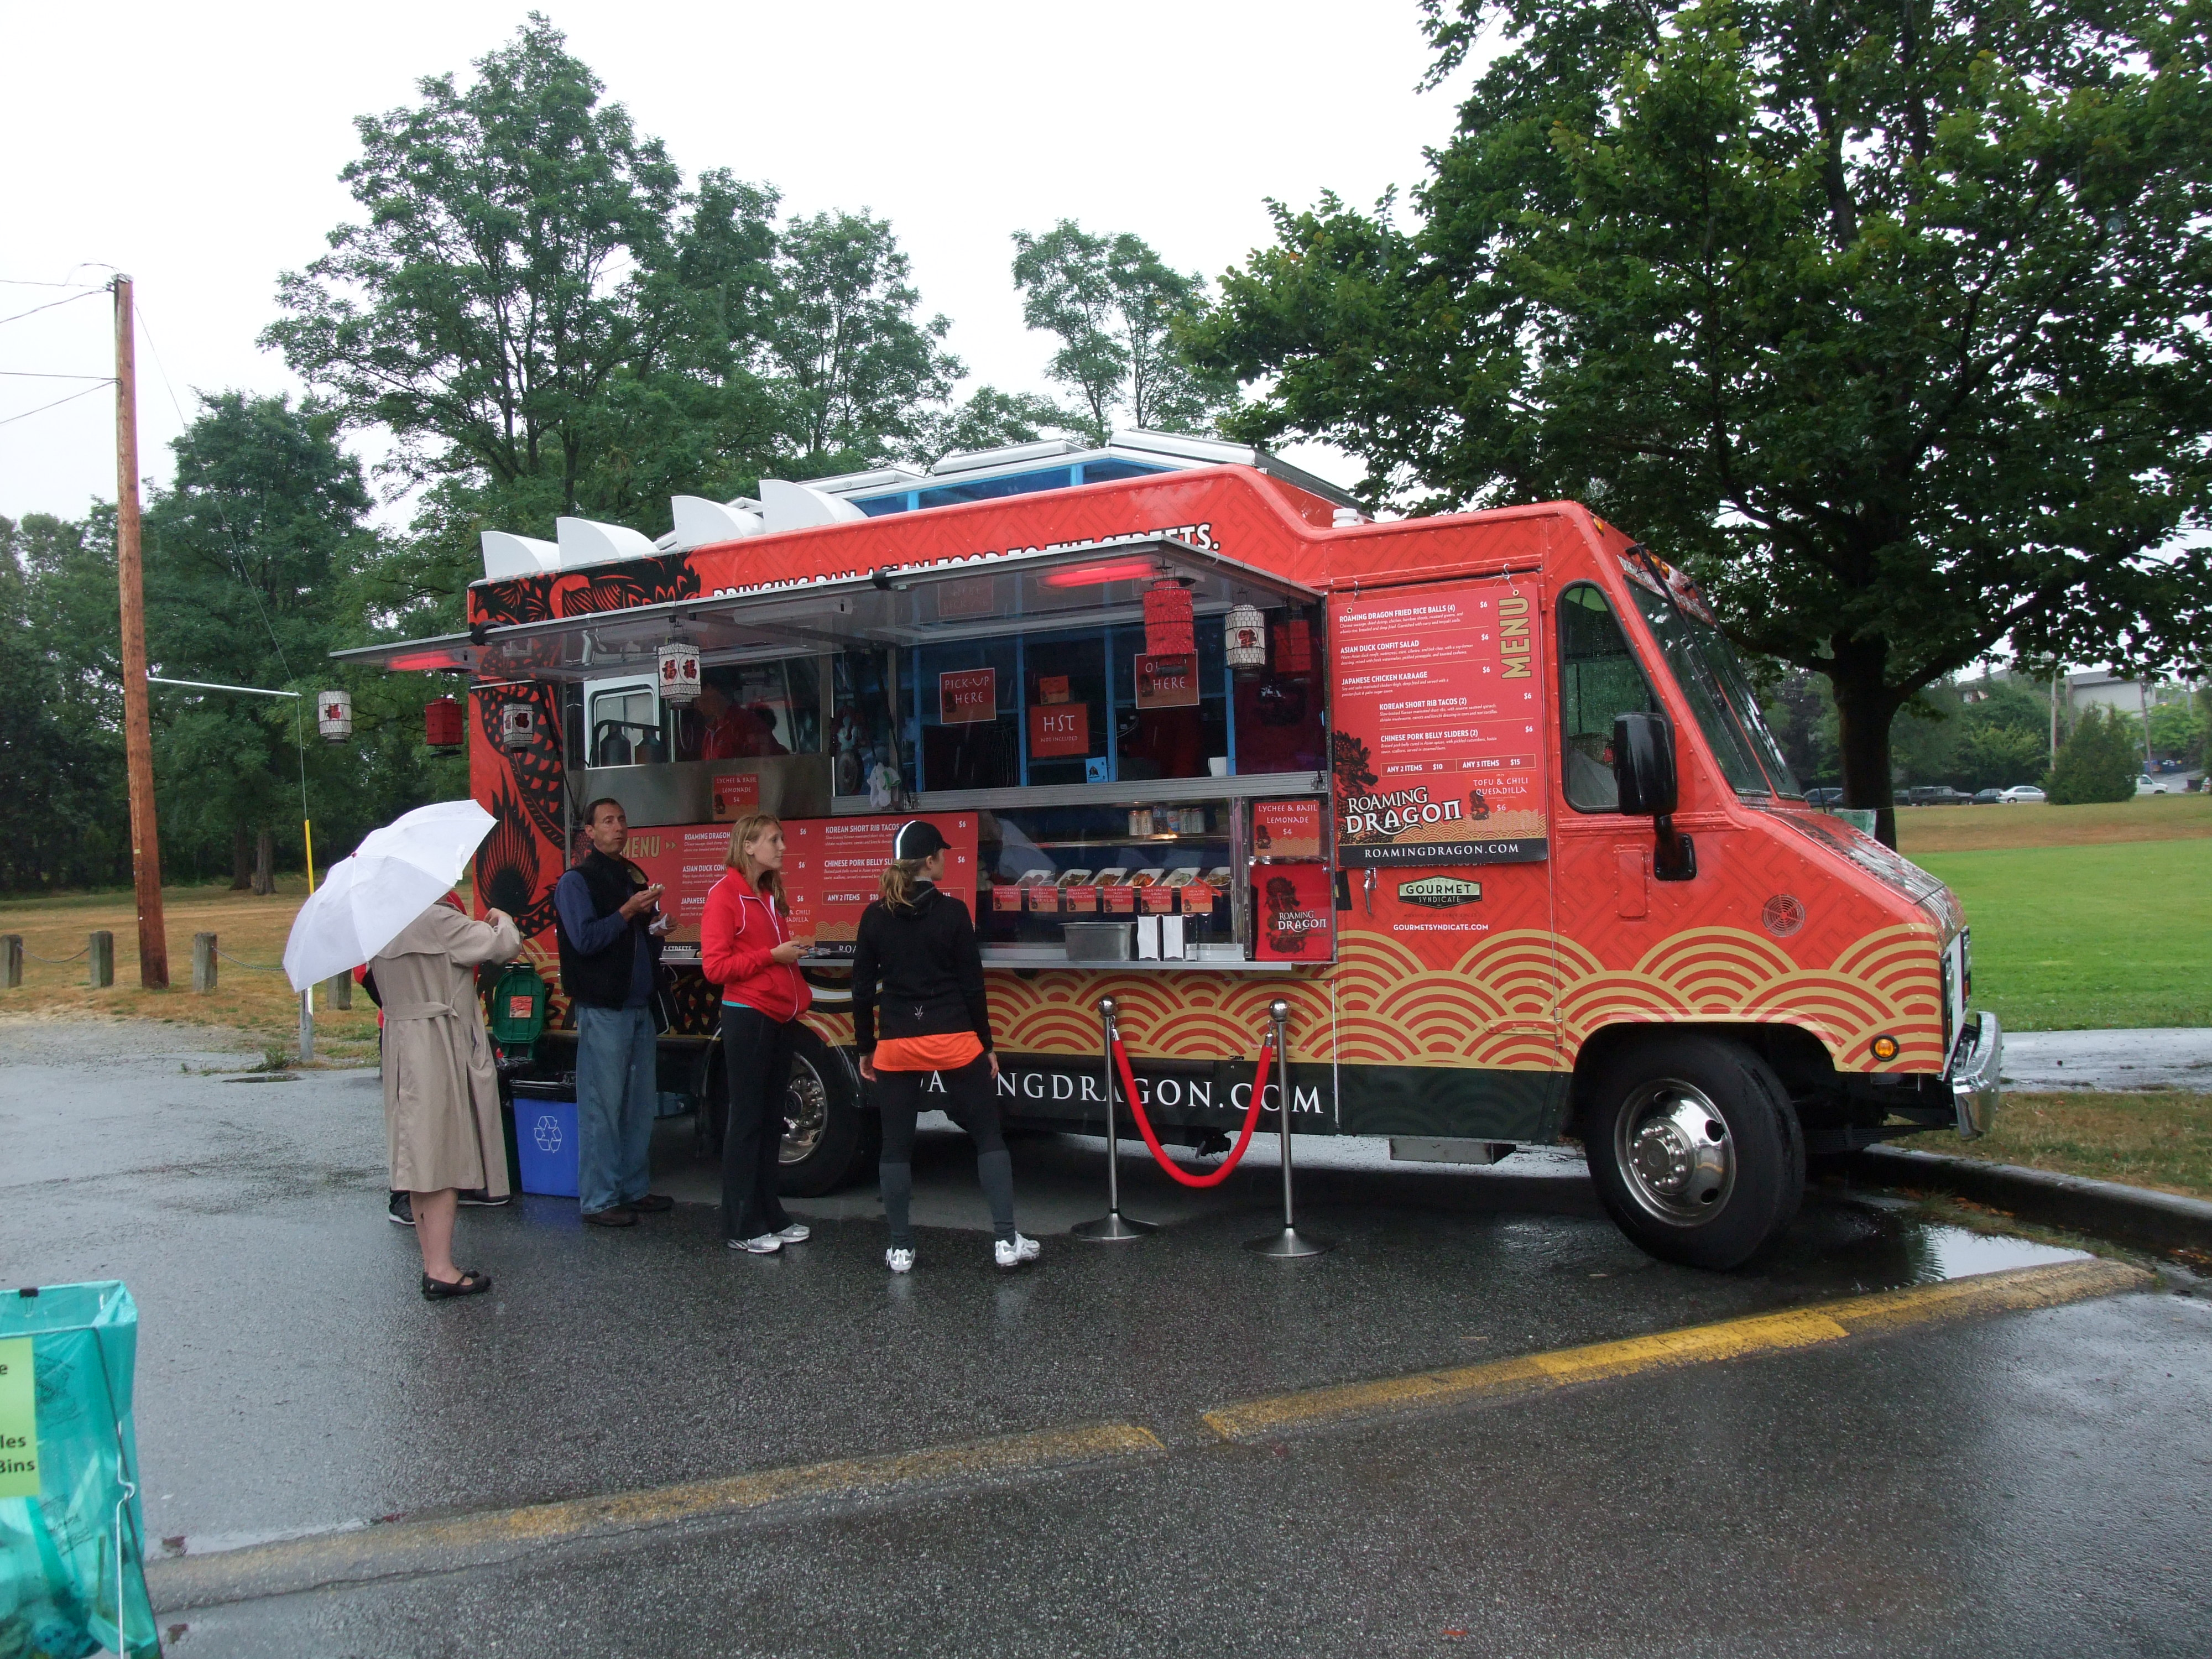 Chinese Street Food Food Truck